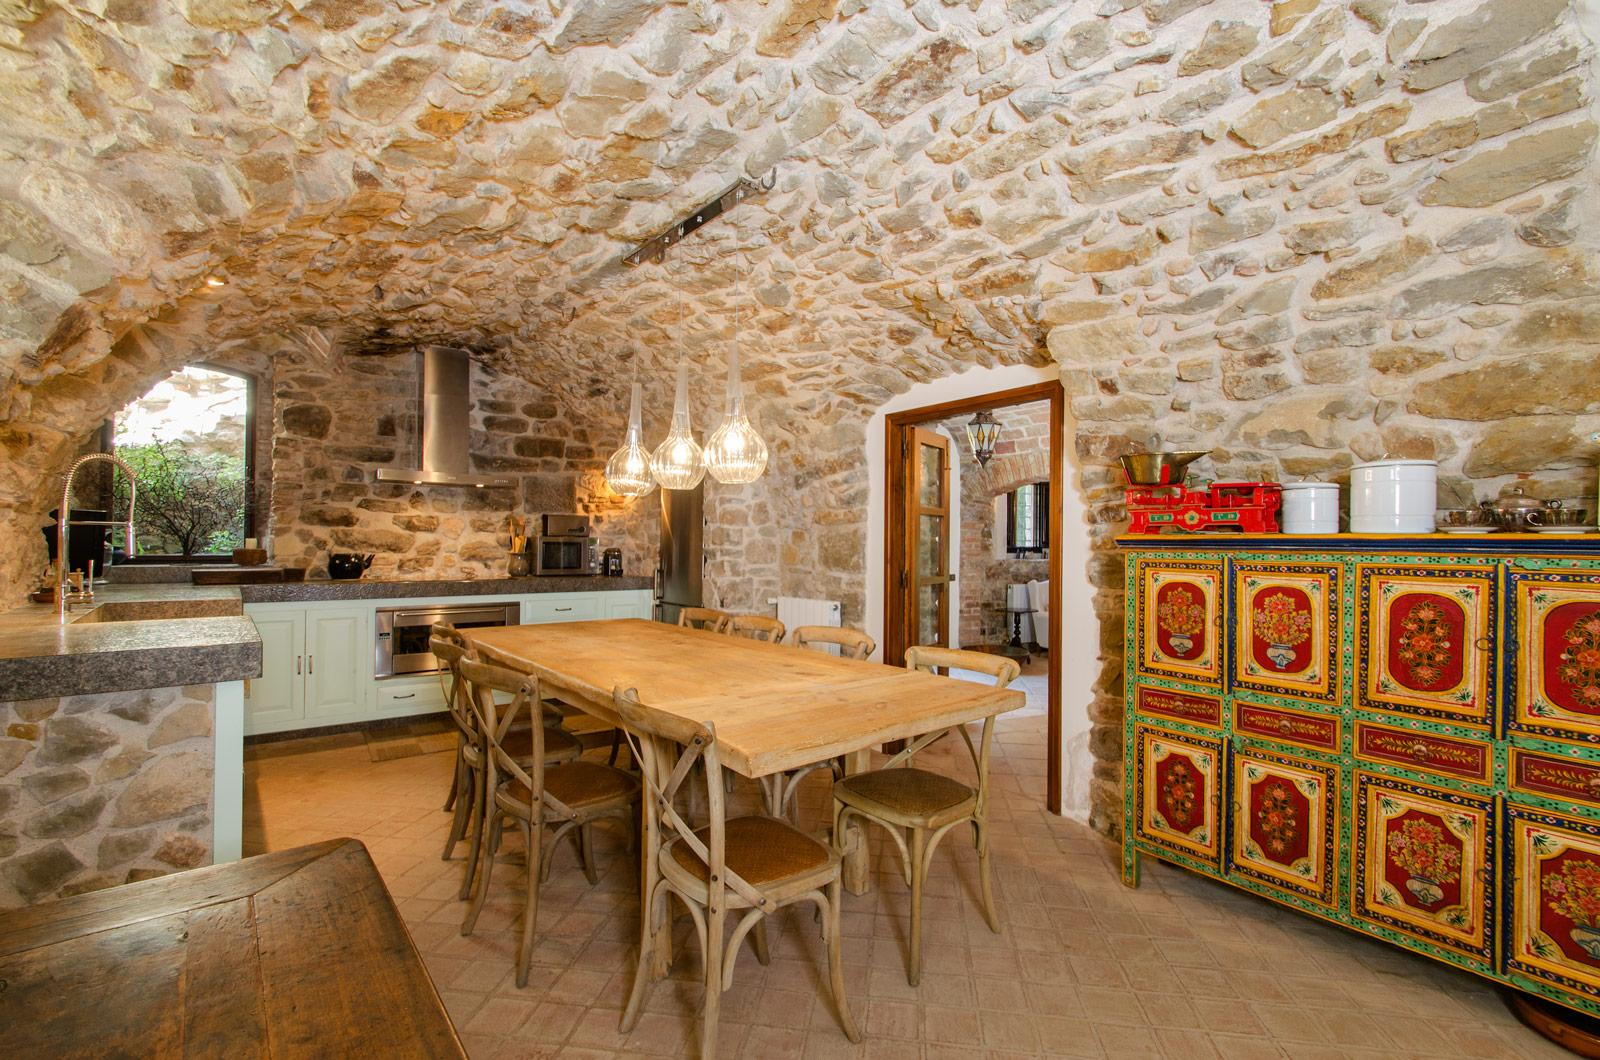 7. Villa for sale in Girona - Traditional Masia, Catalonia country house, for sale in Girona